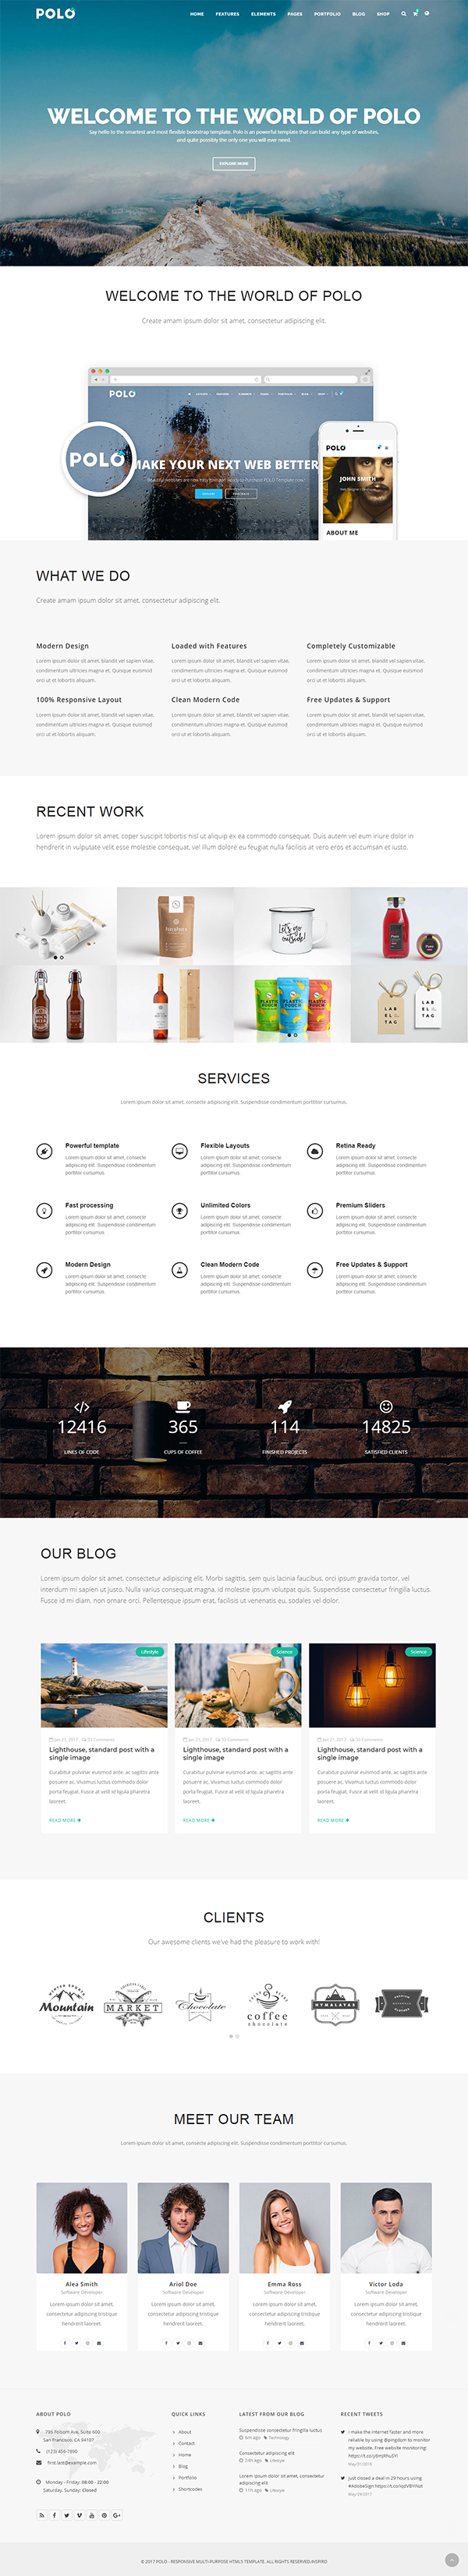 Polo - Responsive Multi-Purpose HTML5 Template